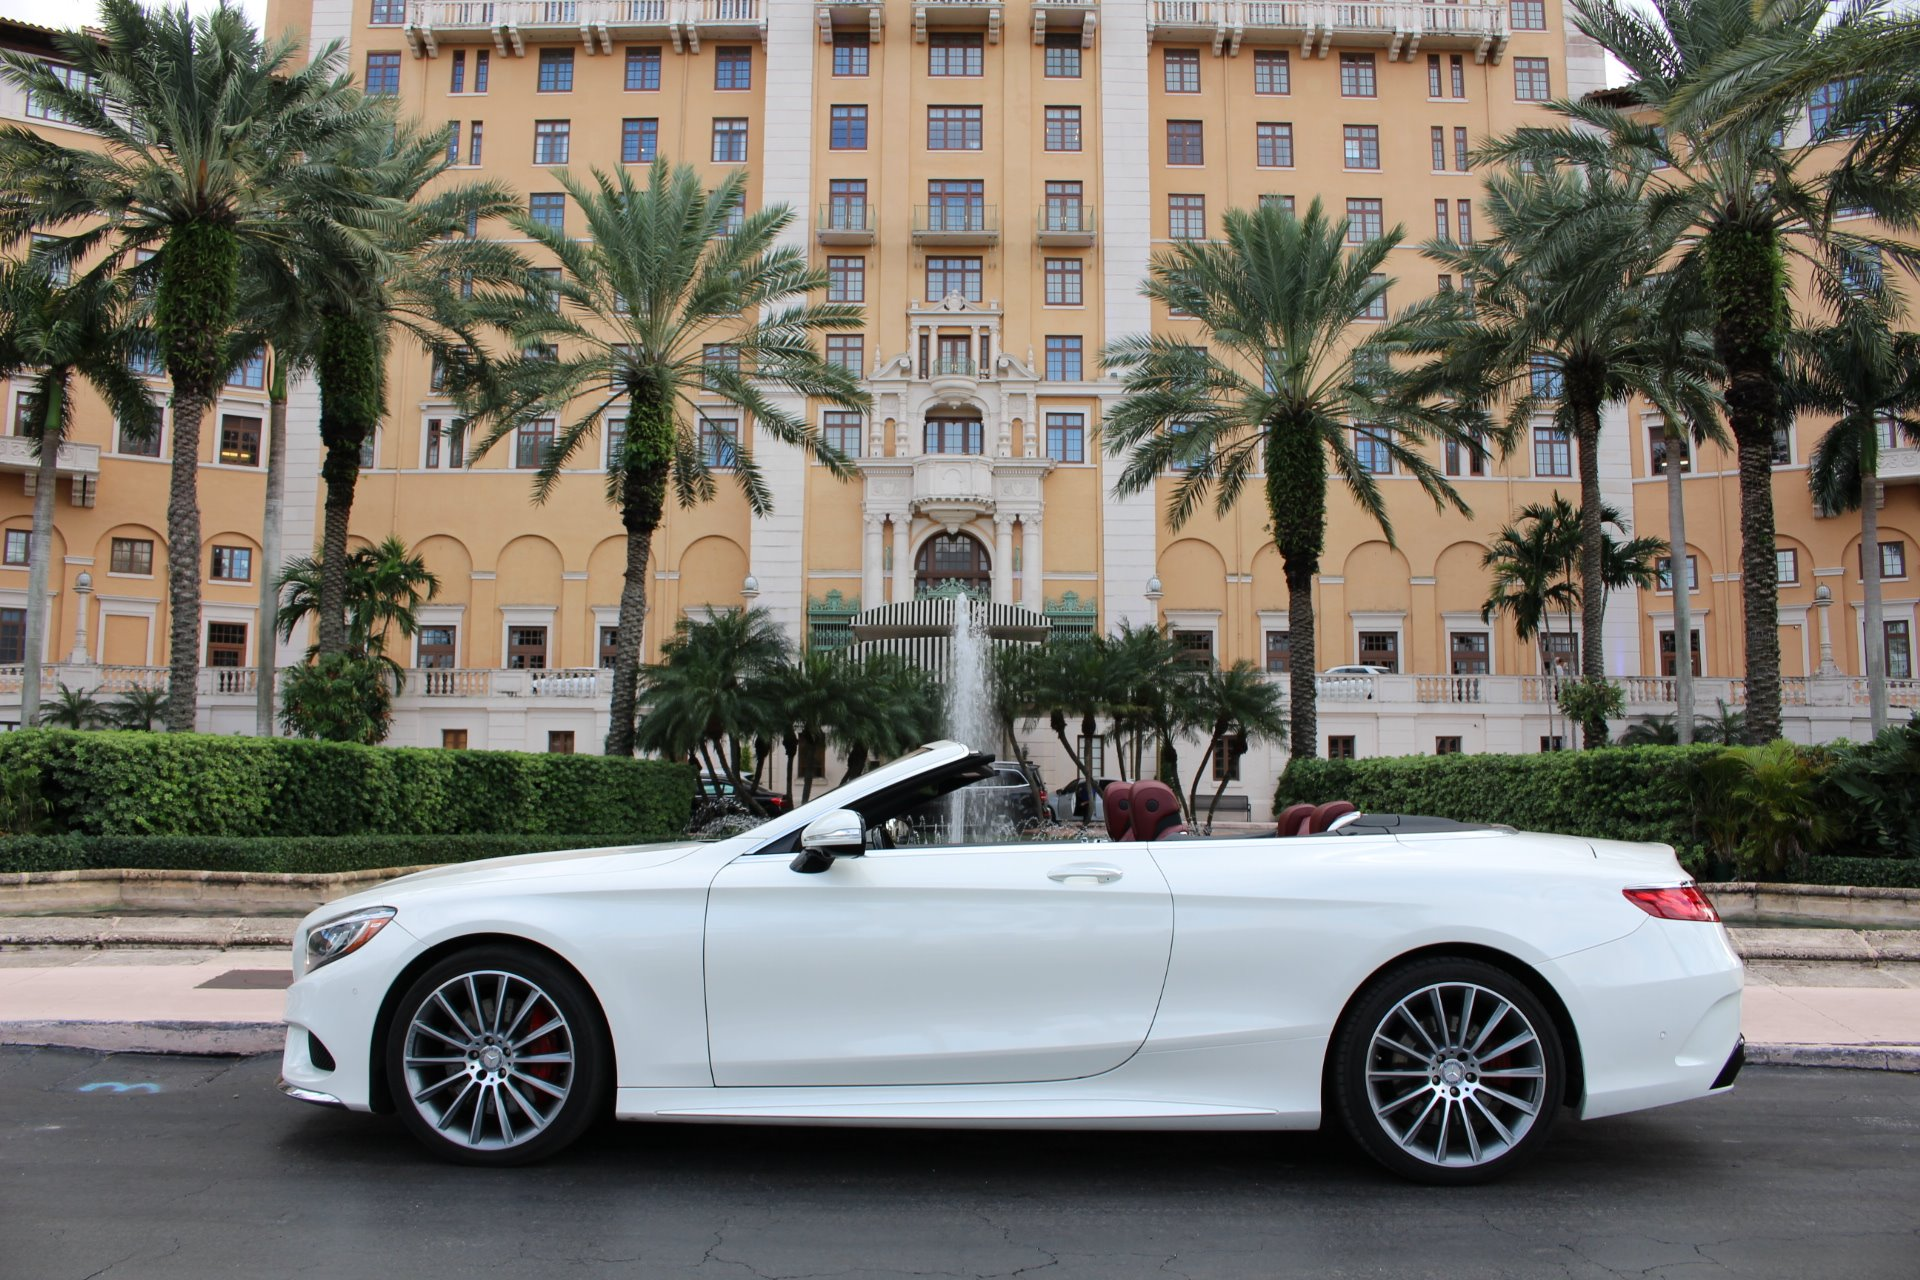 Used 2017 Mercedes-Benz S-Class S 550 for sale Sold at The Gables Sports Cars in Miami FL 33146 2